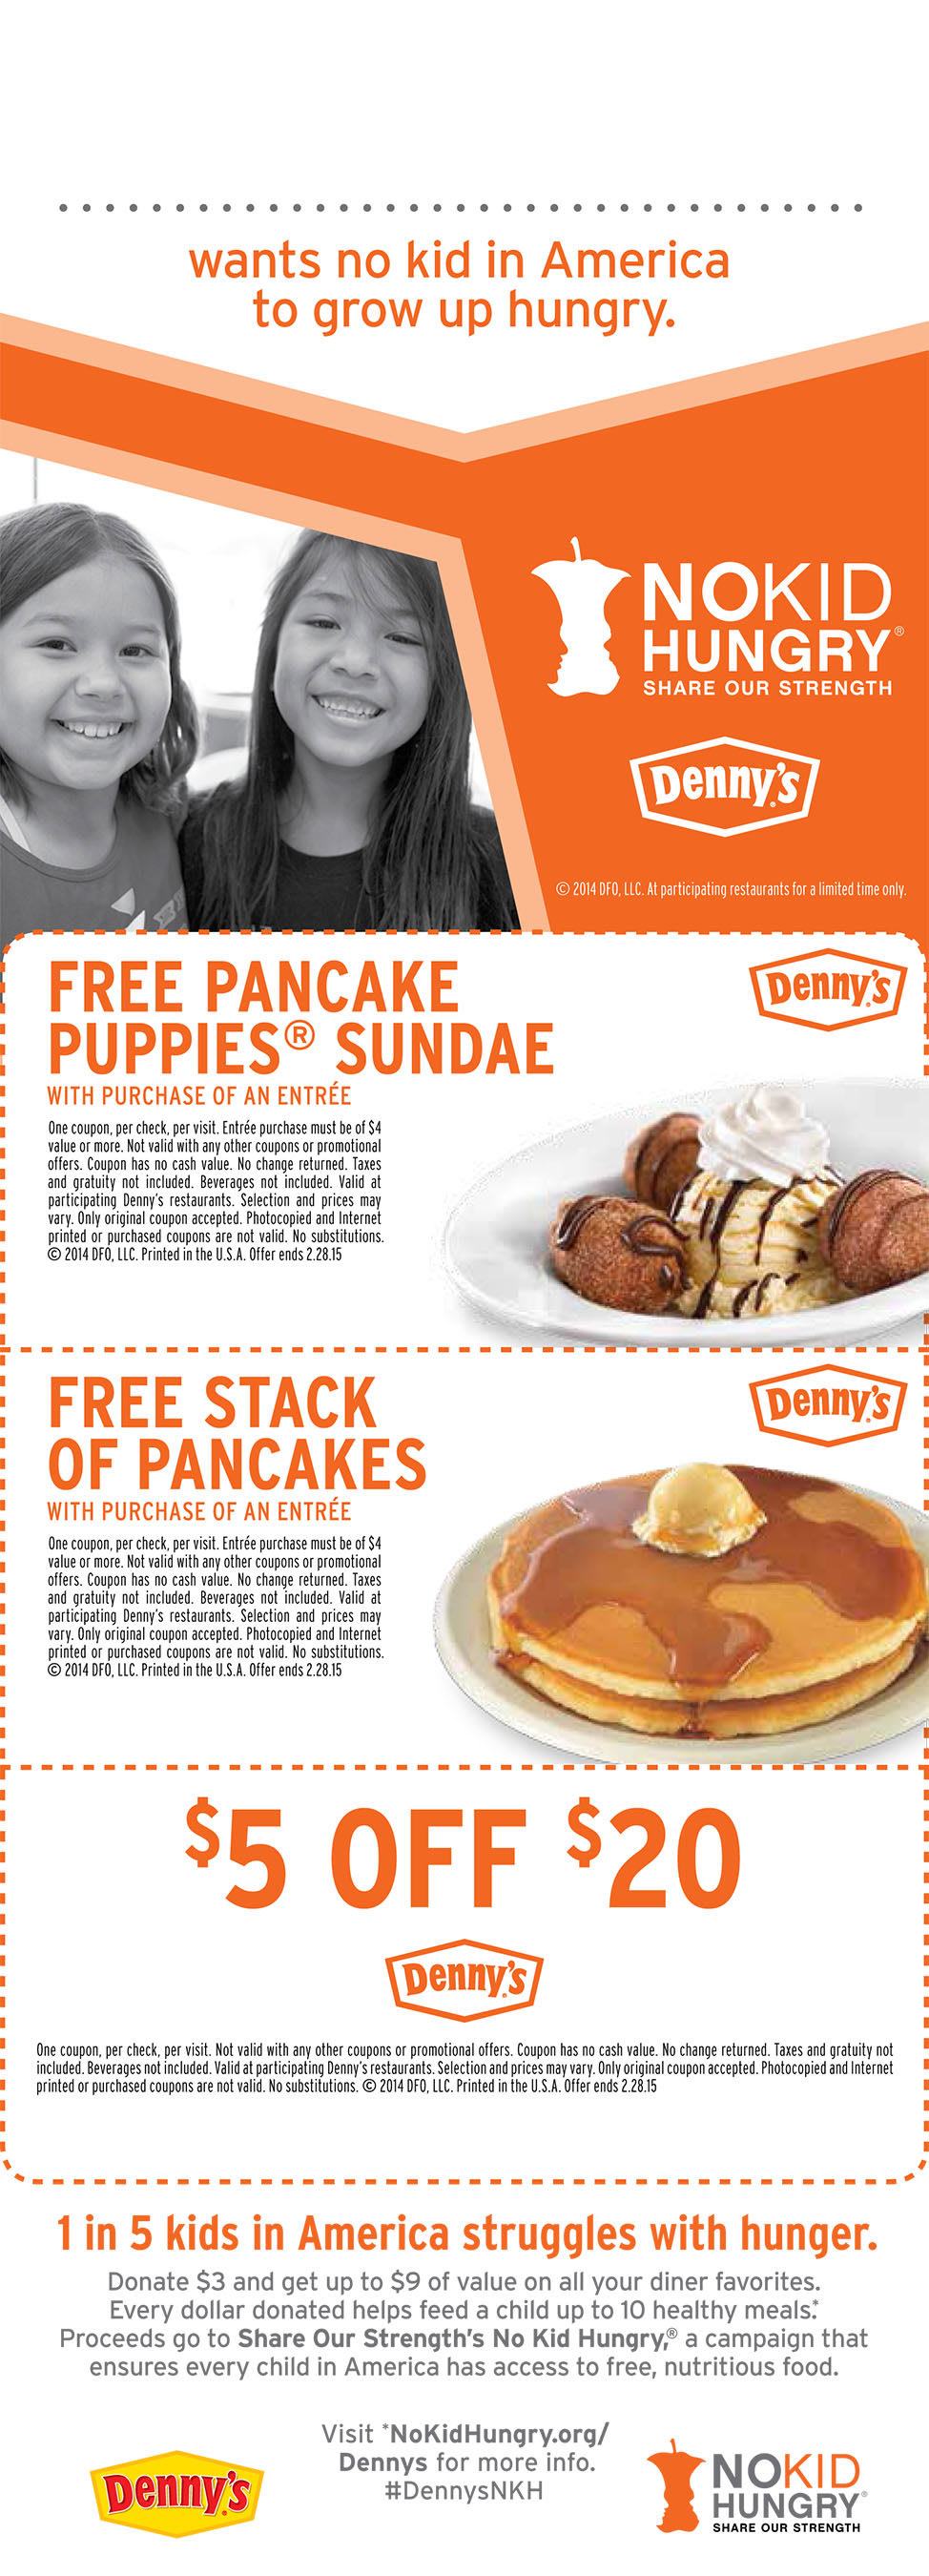 For a $3 donation, guests will receive $9 worth of coupons redeemable at participating Denny's restaurants. Every dollar donated helps feed a child ...